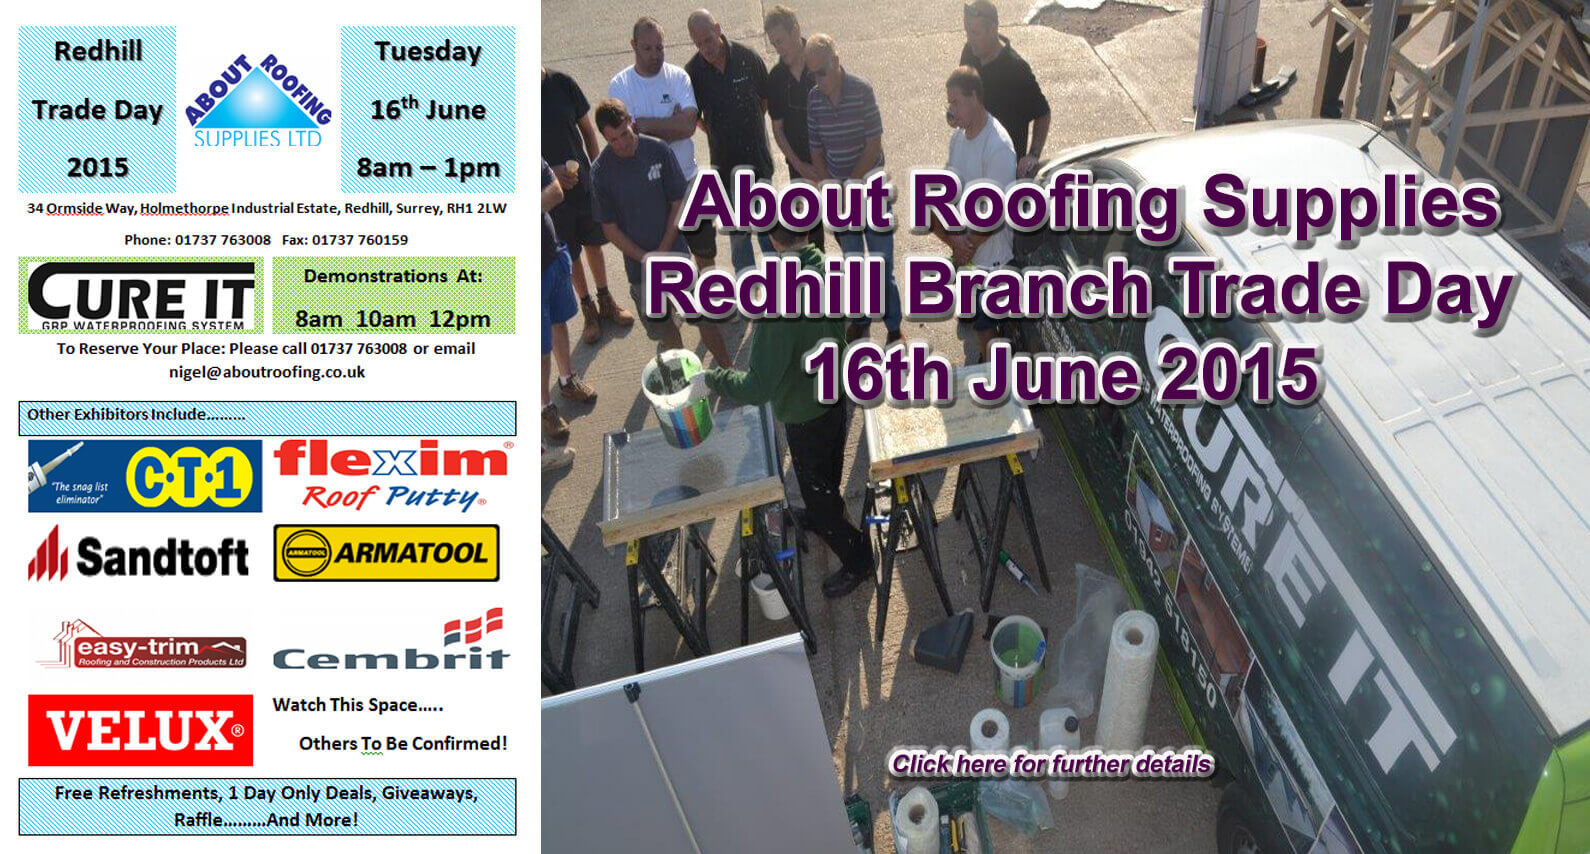 About Roofing Supplies Redhill Branch Trade Day 16.06.15